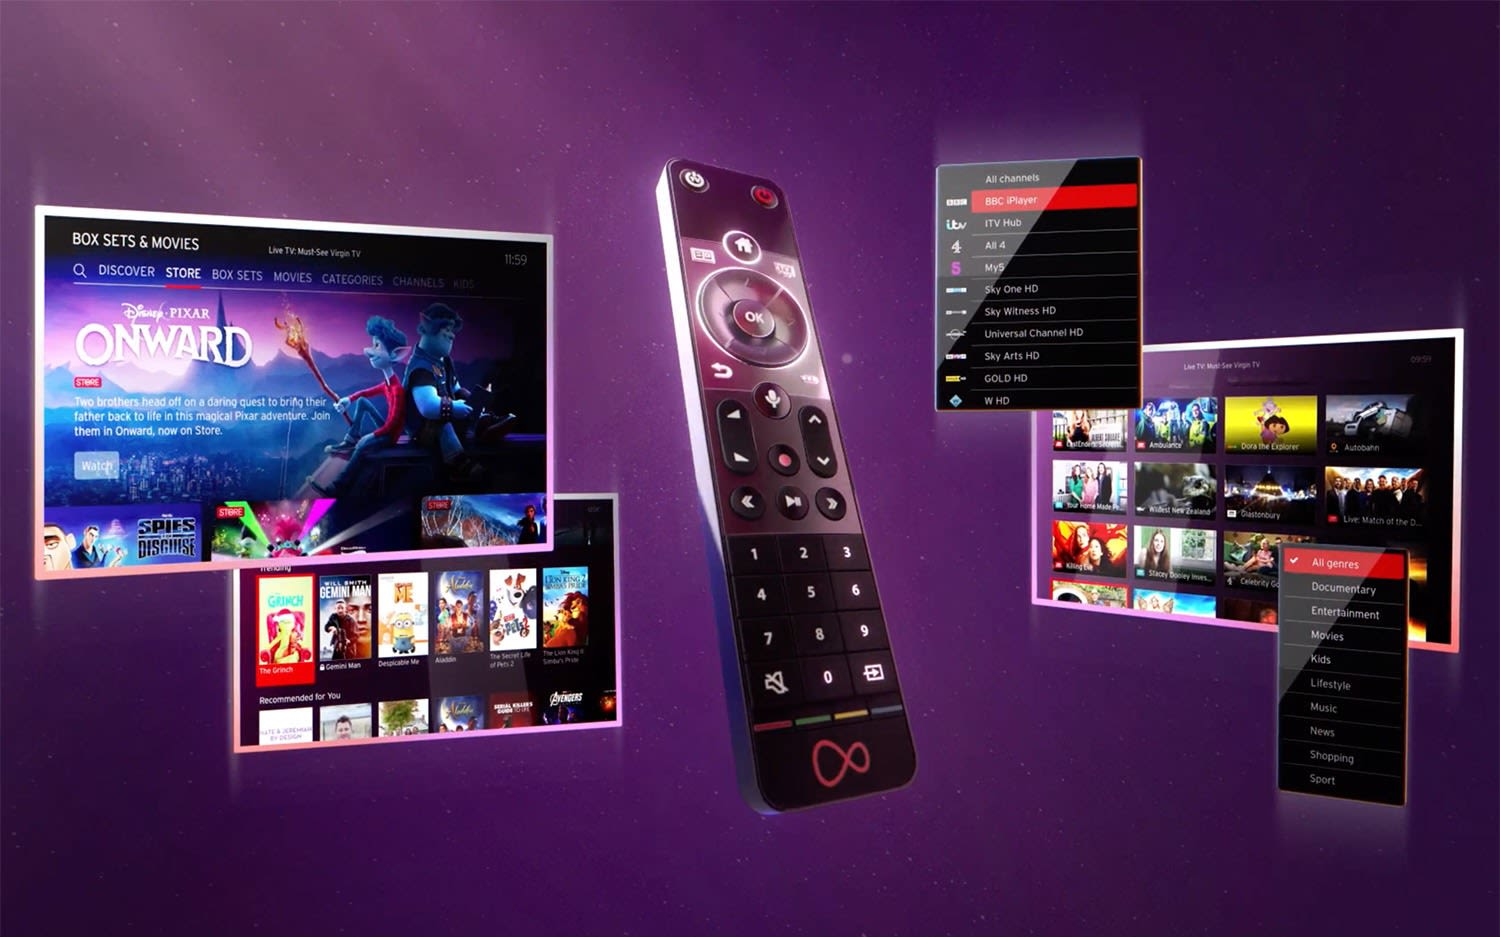 Virgin Media's new Virgin TV 360 remote and screens showing the user interface